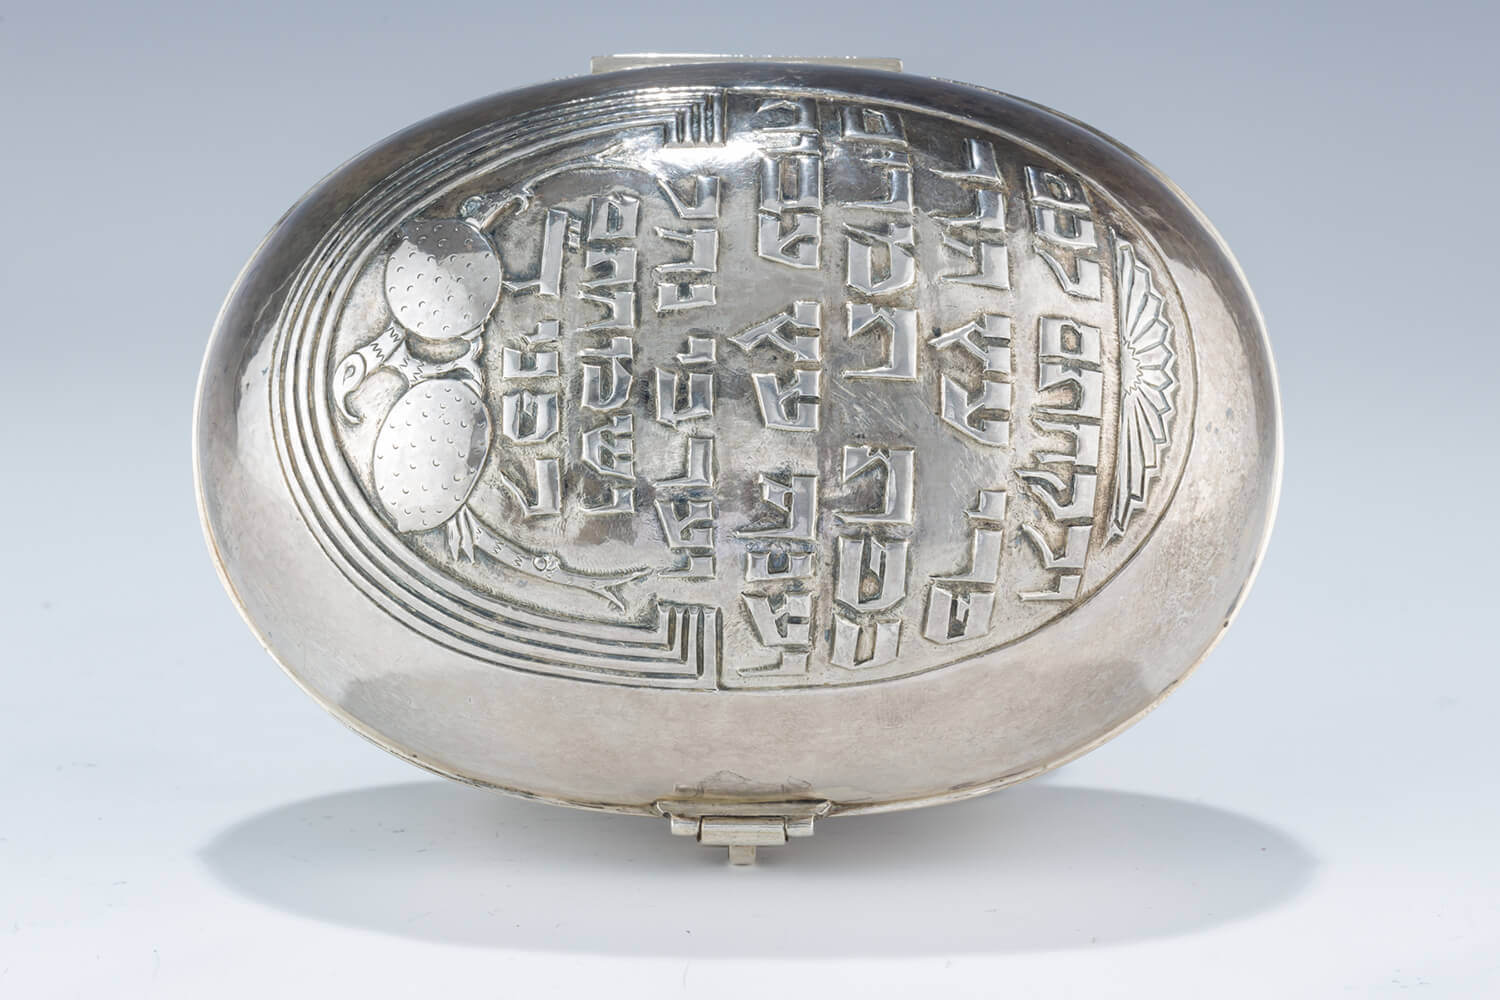 135. AN EXCEPTIONAL SILVER ETROG BOX ATTRIBUTED TO B